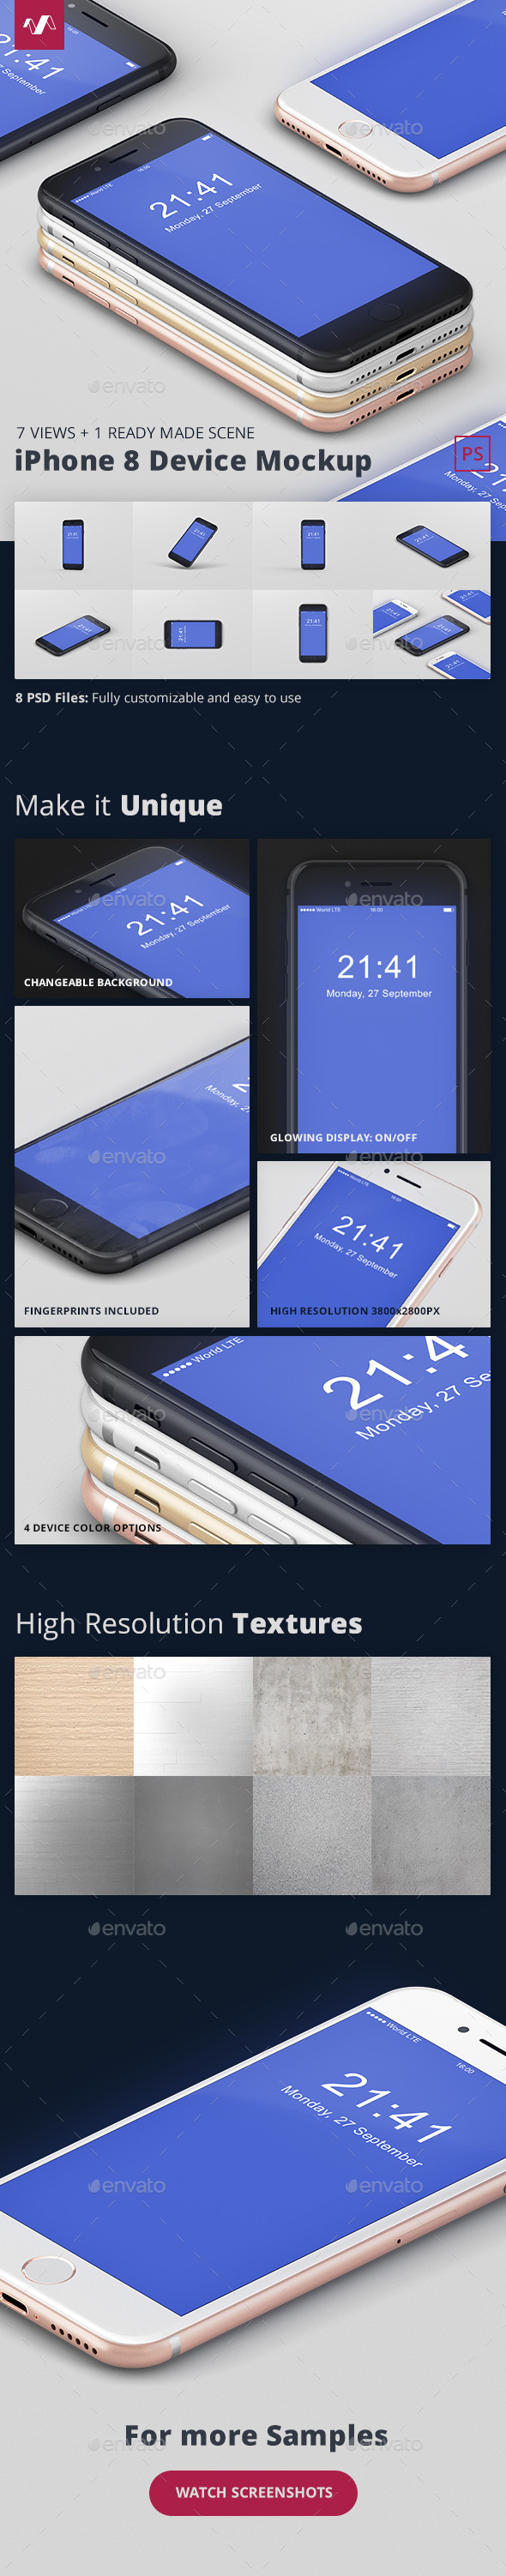 Phone 8 Mockup - Mobile Displays